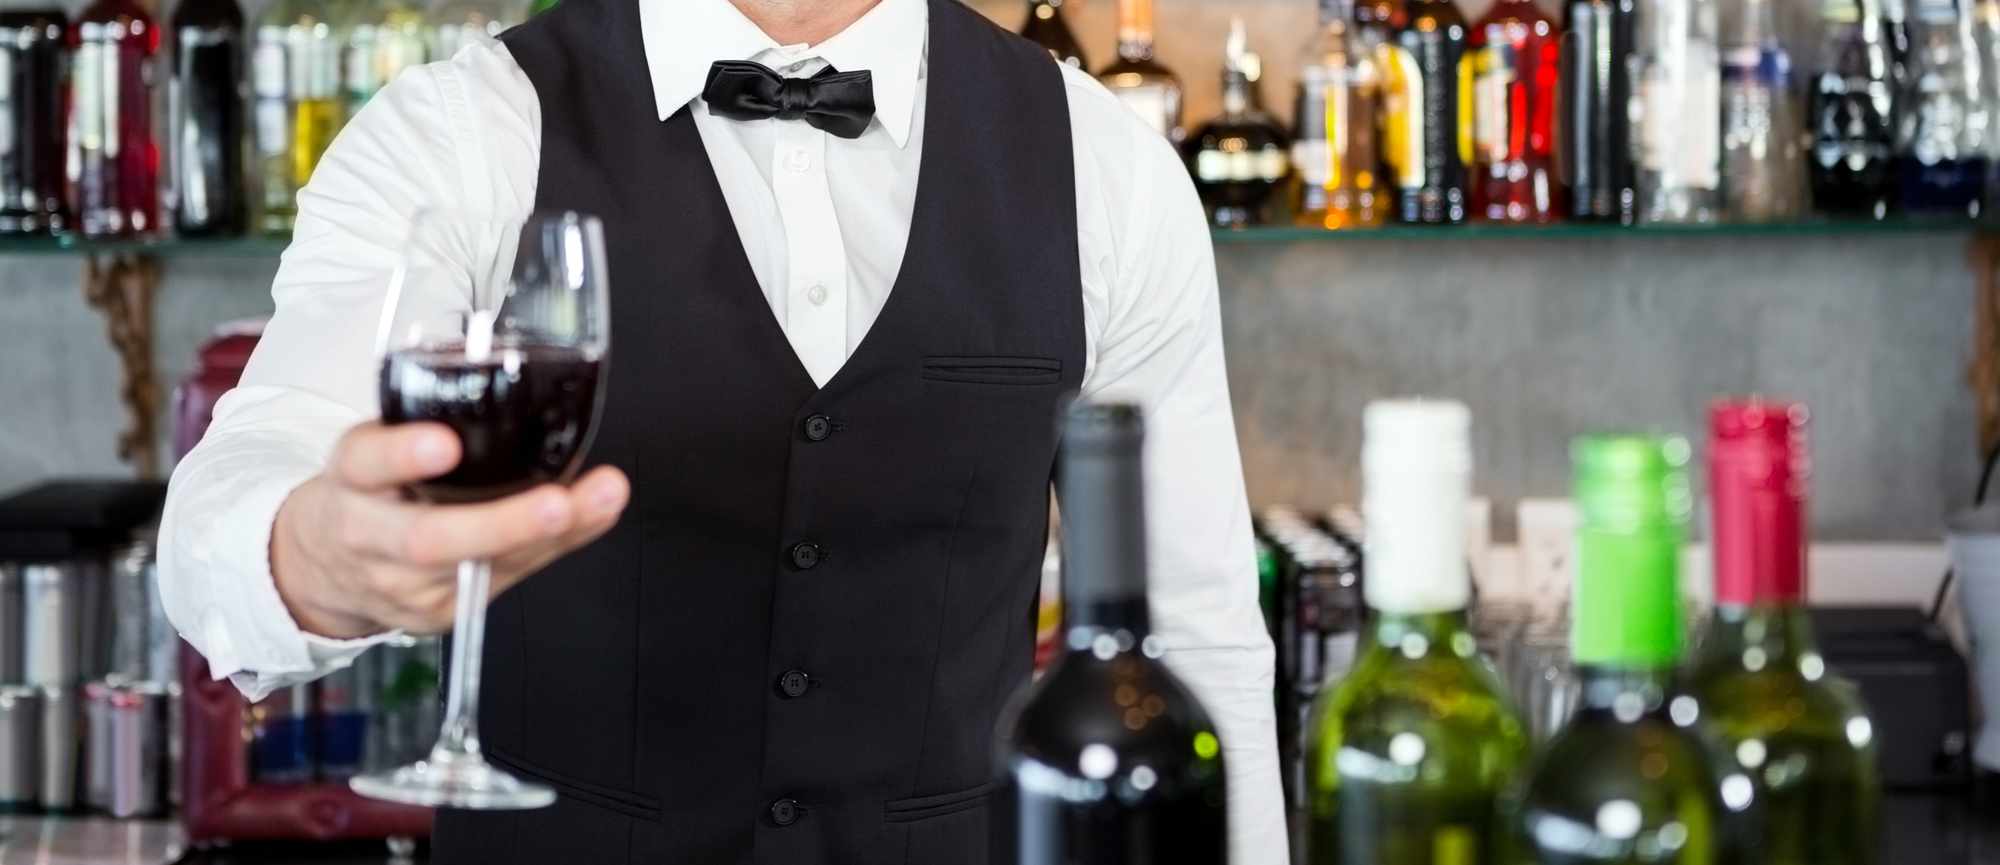 bar server handing over a glass of red wine